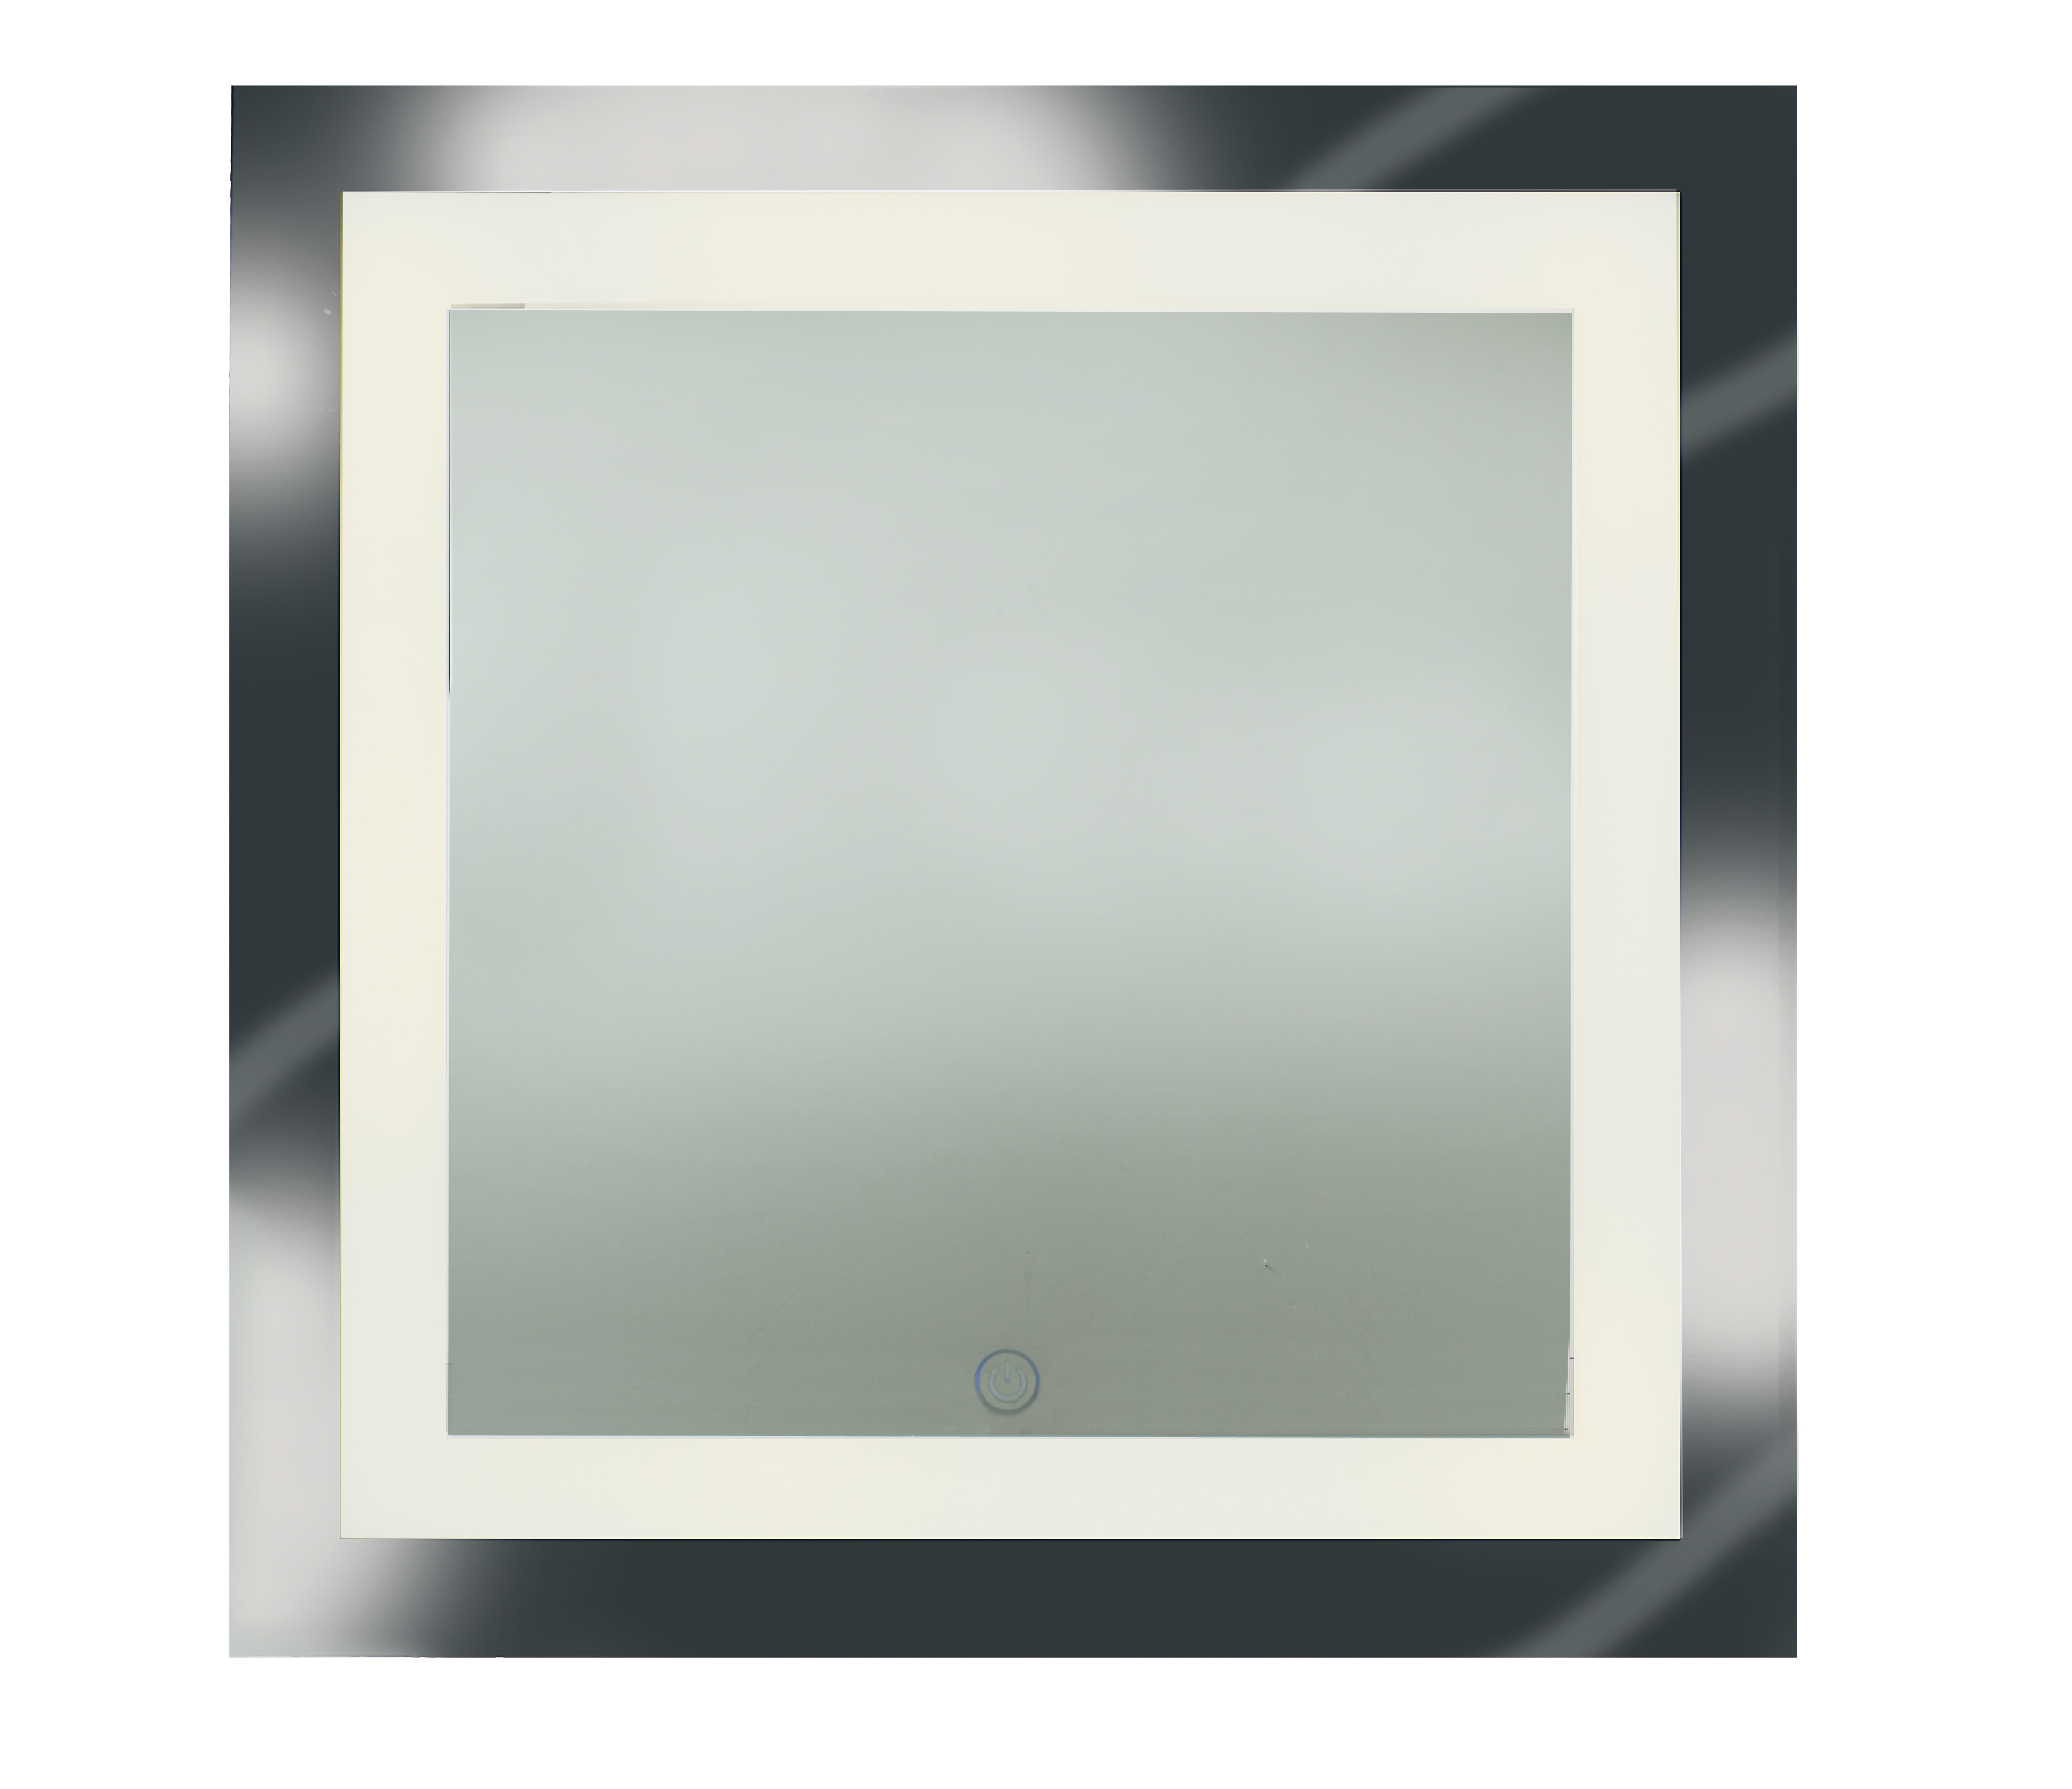 Spa Square Dimmable Led Mirror By Access 70086ledd Mir